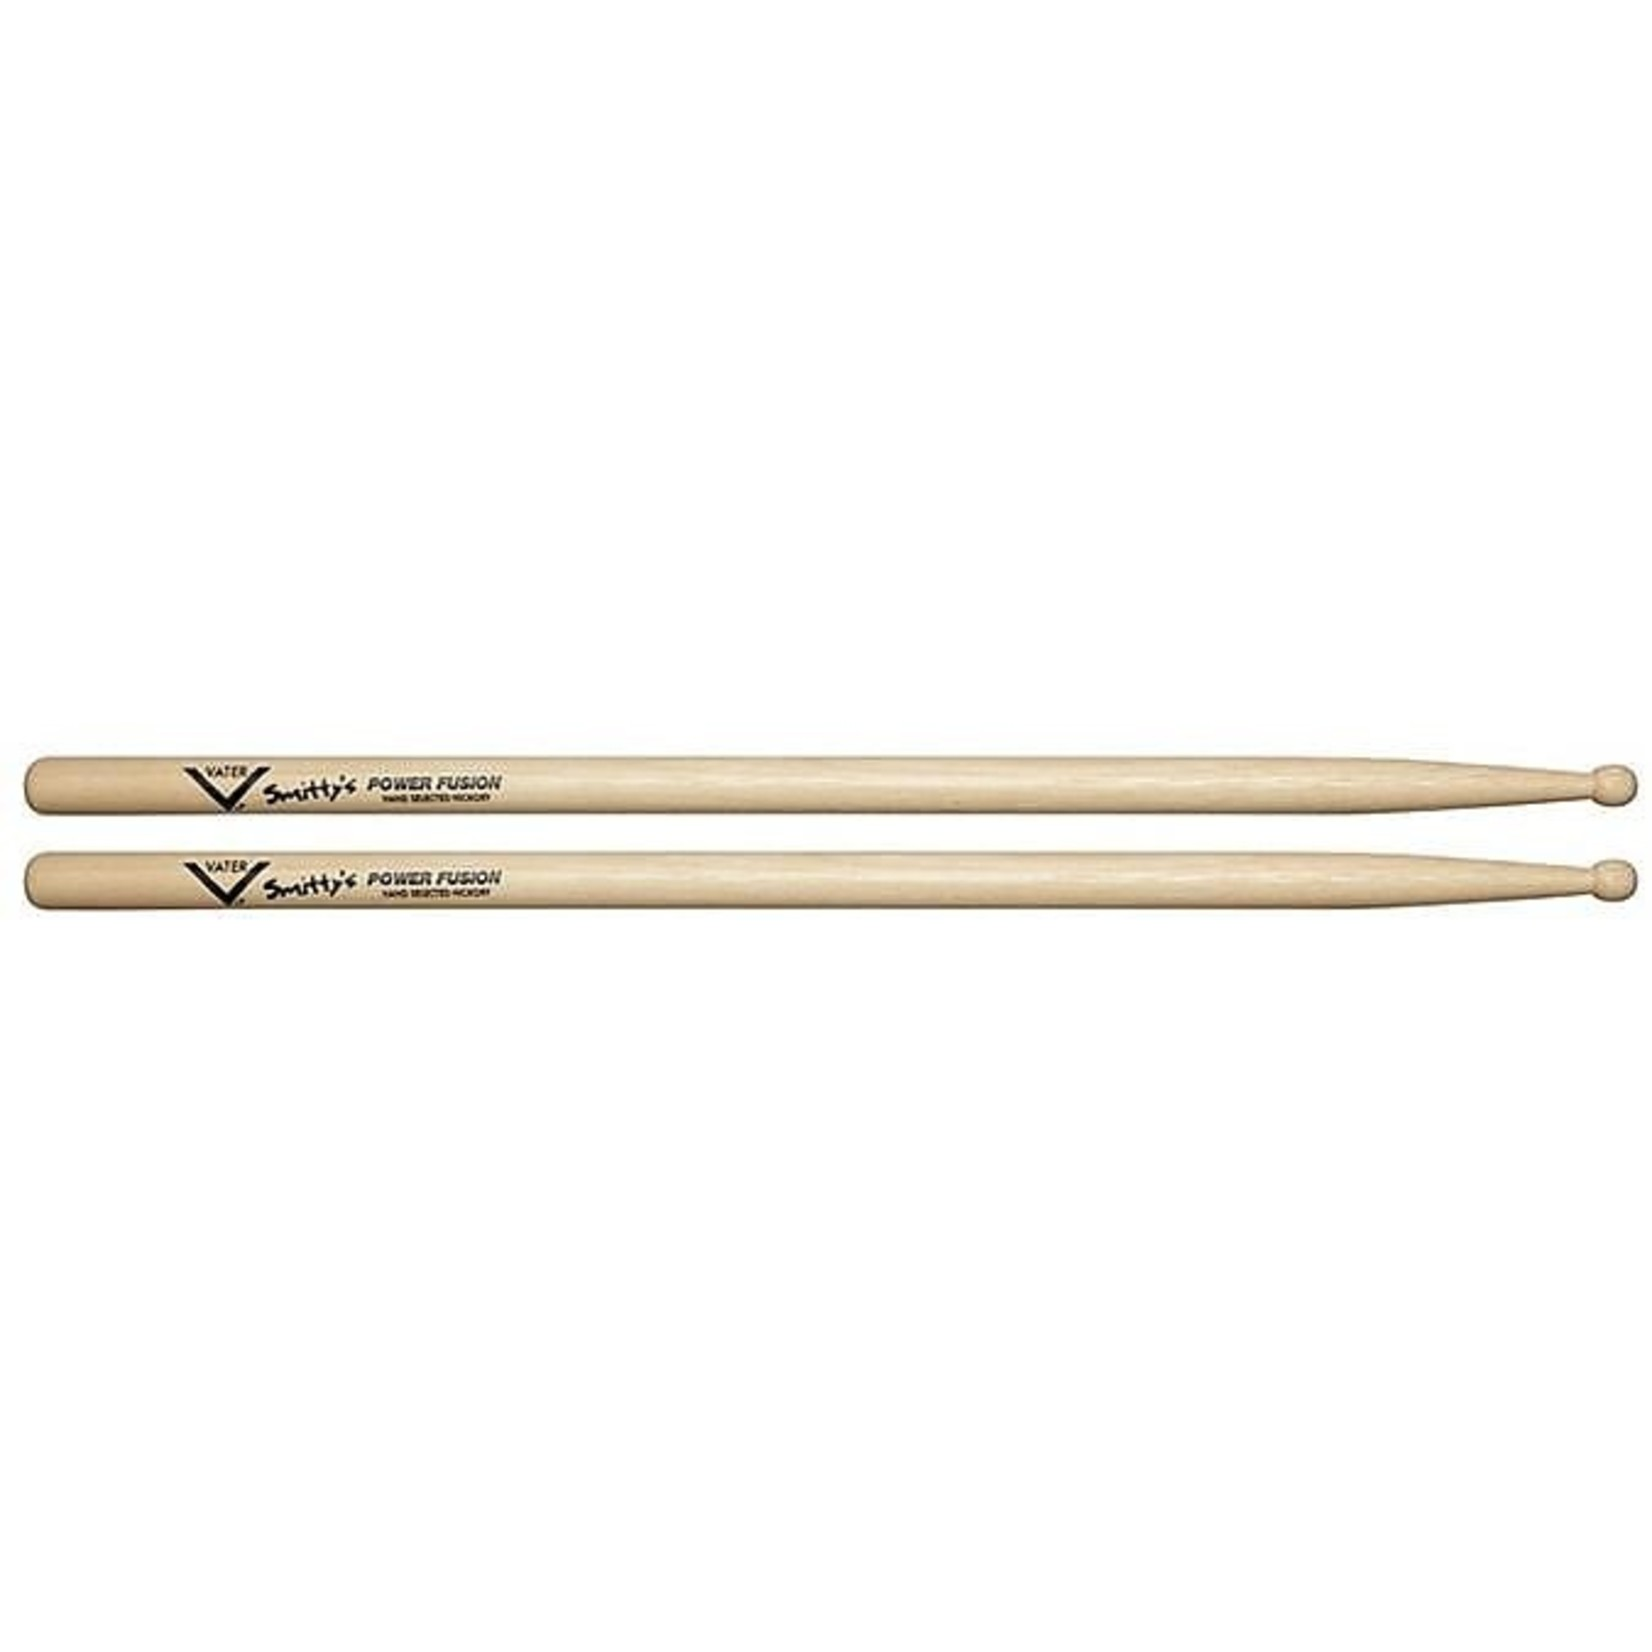 Vater Vater Smitty Smith's Power Fusion